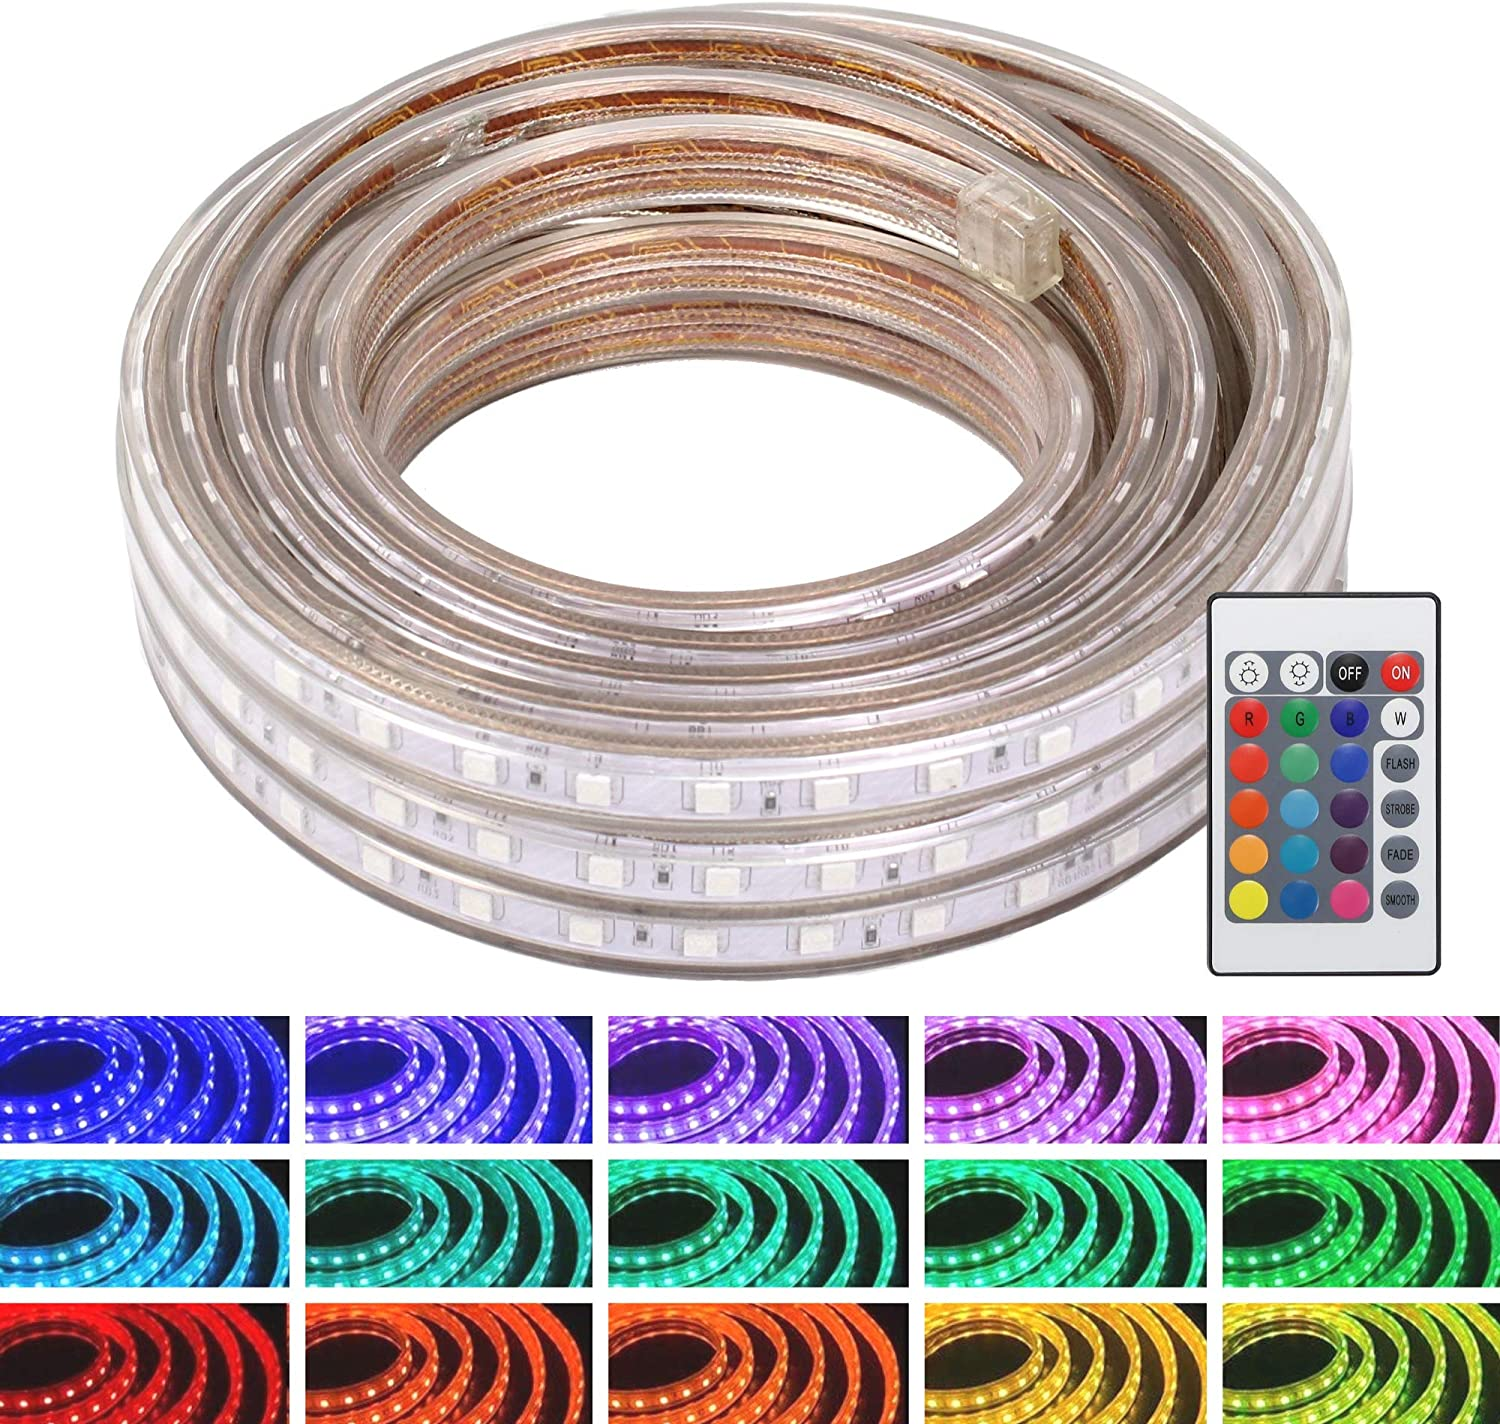 WYZworks LED Rope Lights 150ft 4 years warranty Color Strip Waterproof Changing National uniform free shipping